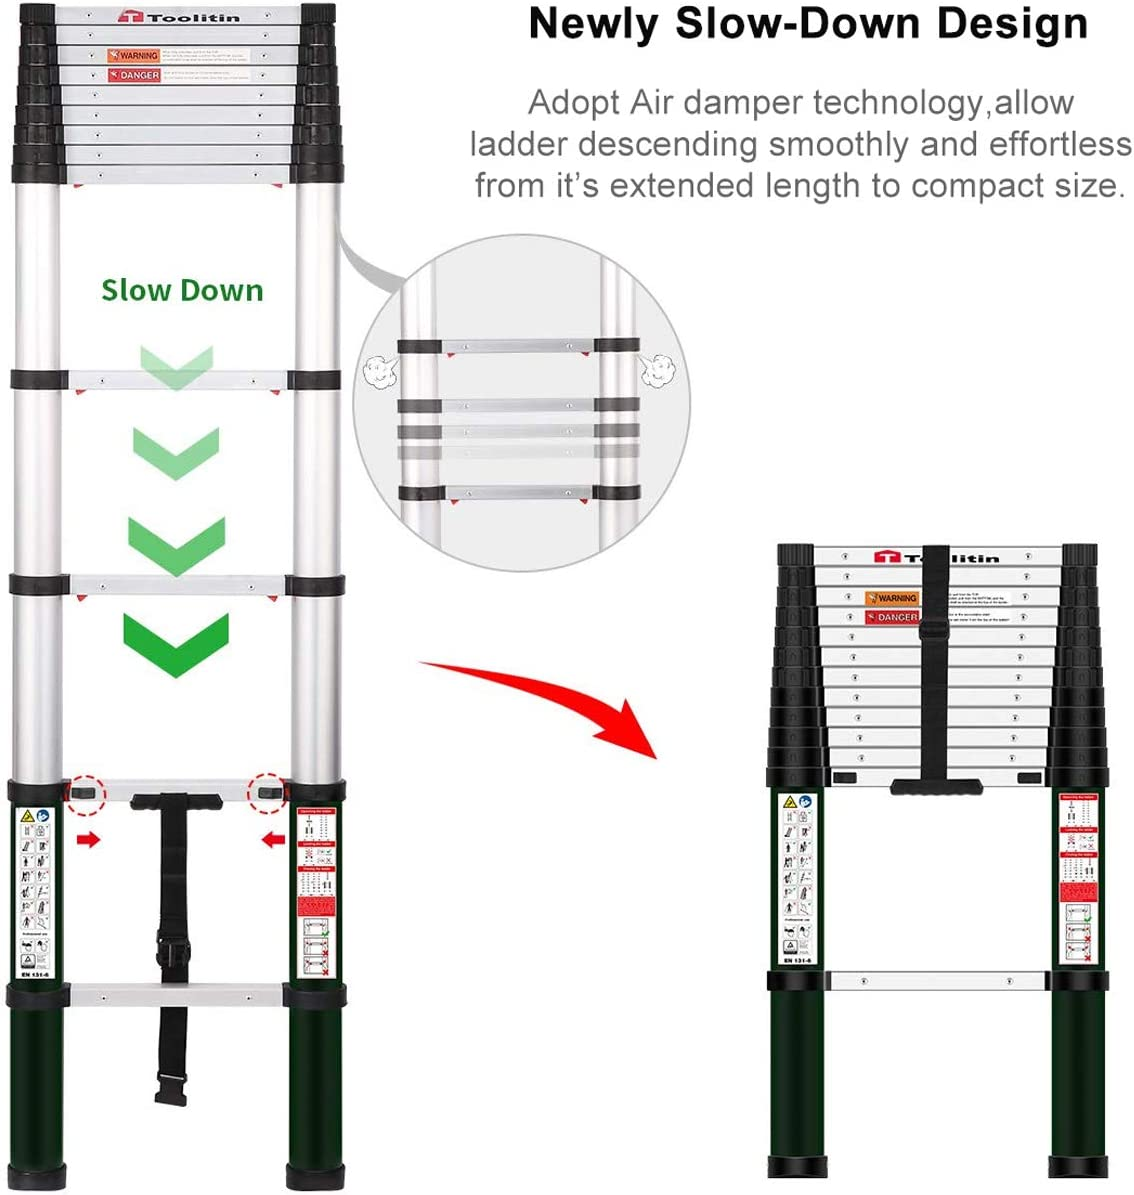 TOOLITIN Telescoping Ladder, 12.5 FT One Button Retraction Aluminum Telescopic Extension Ladder, Slow Down Design Extendable Ladders Portable Best for Household Daily or RV Work, 330 Pound Capacity… - -